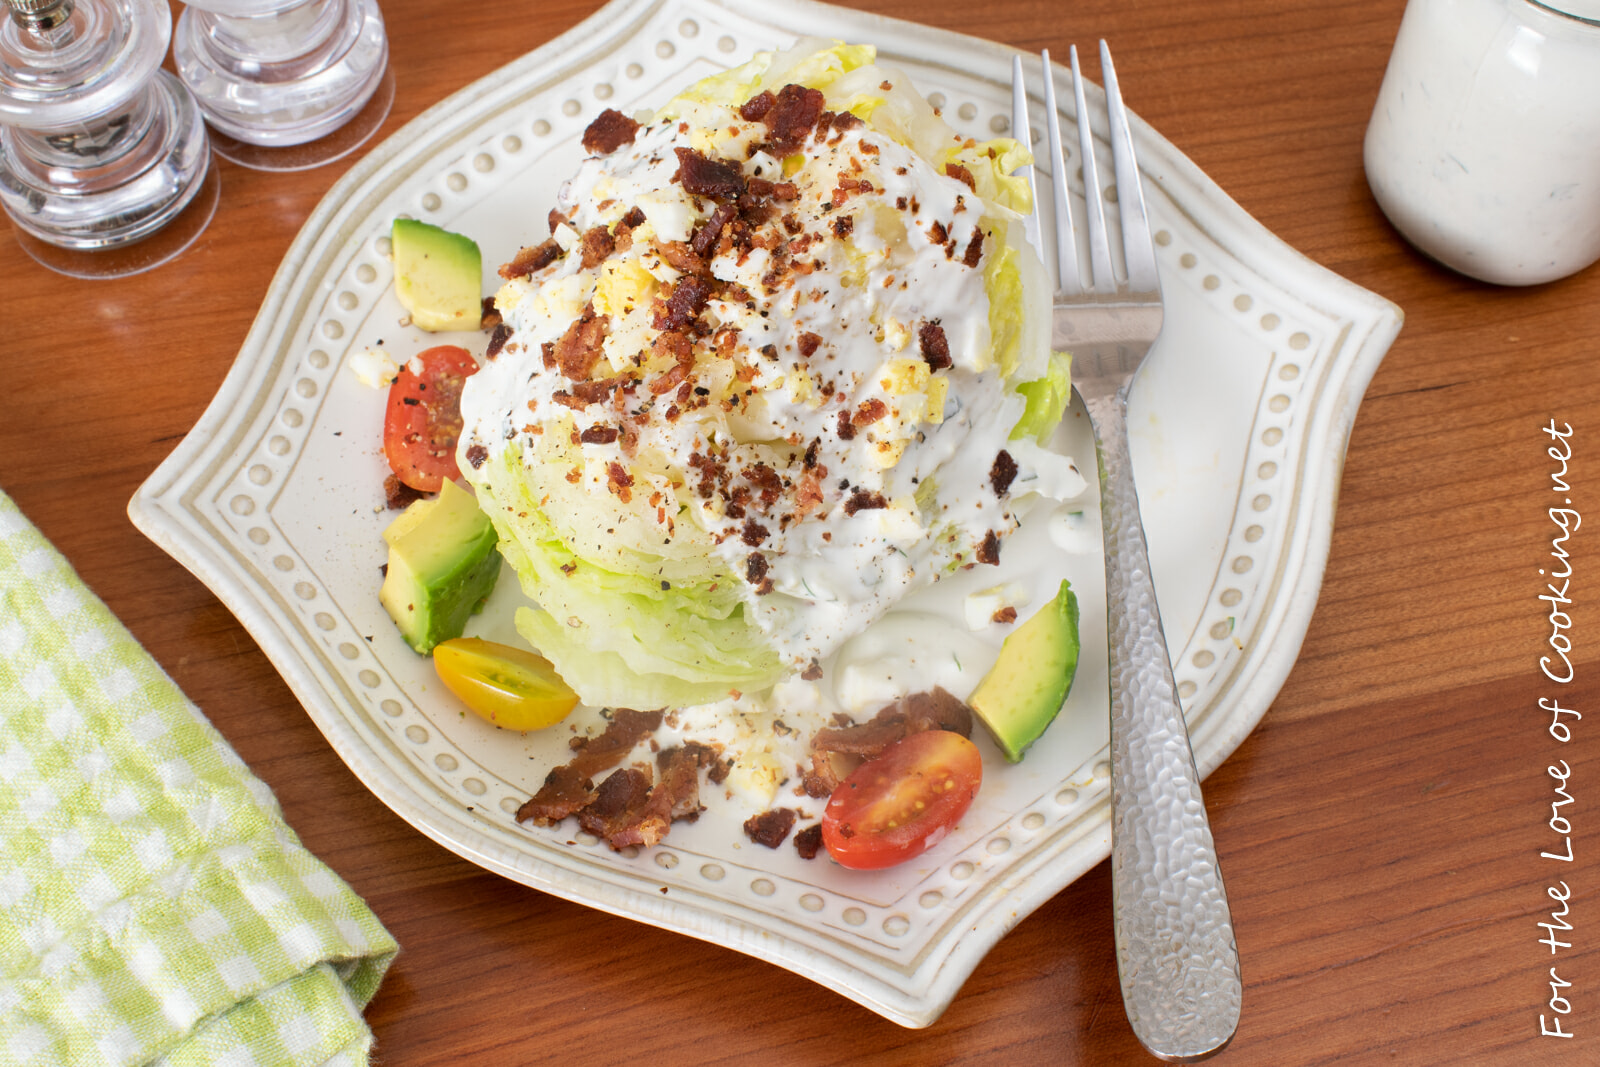 Loaded Wedge Salad with Herb Buttermilk Dressing